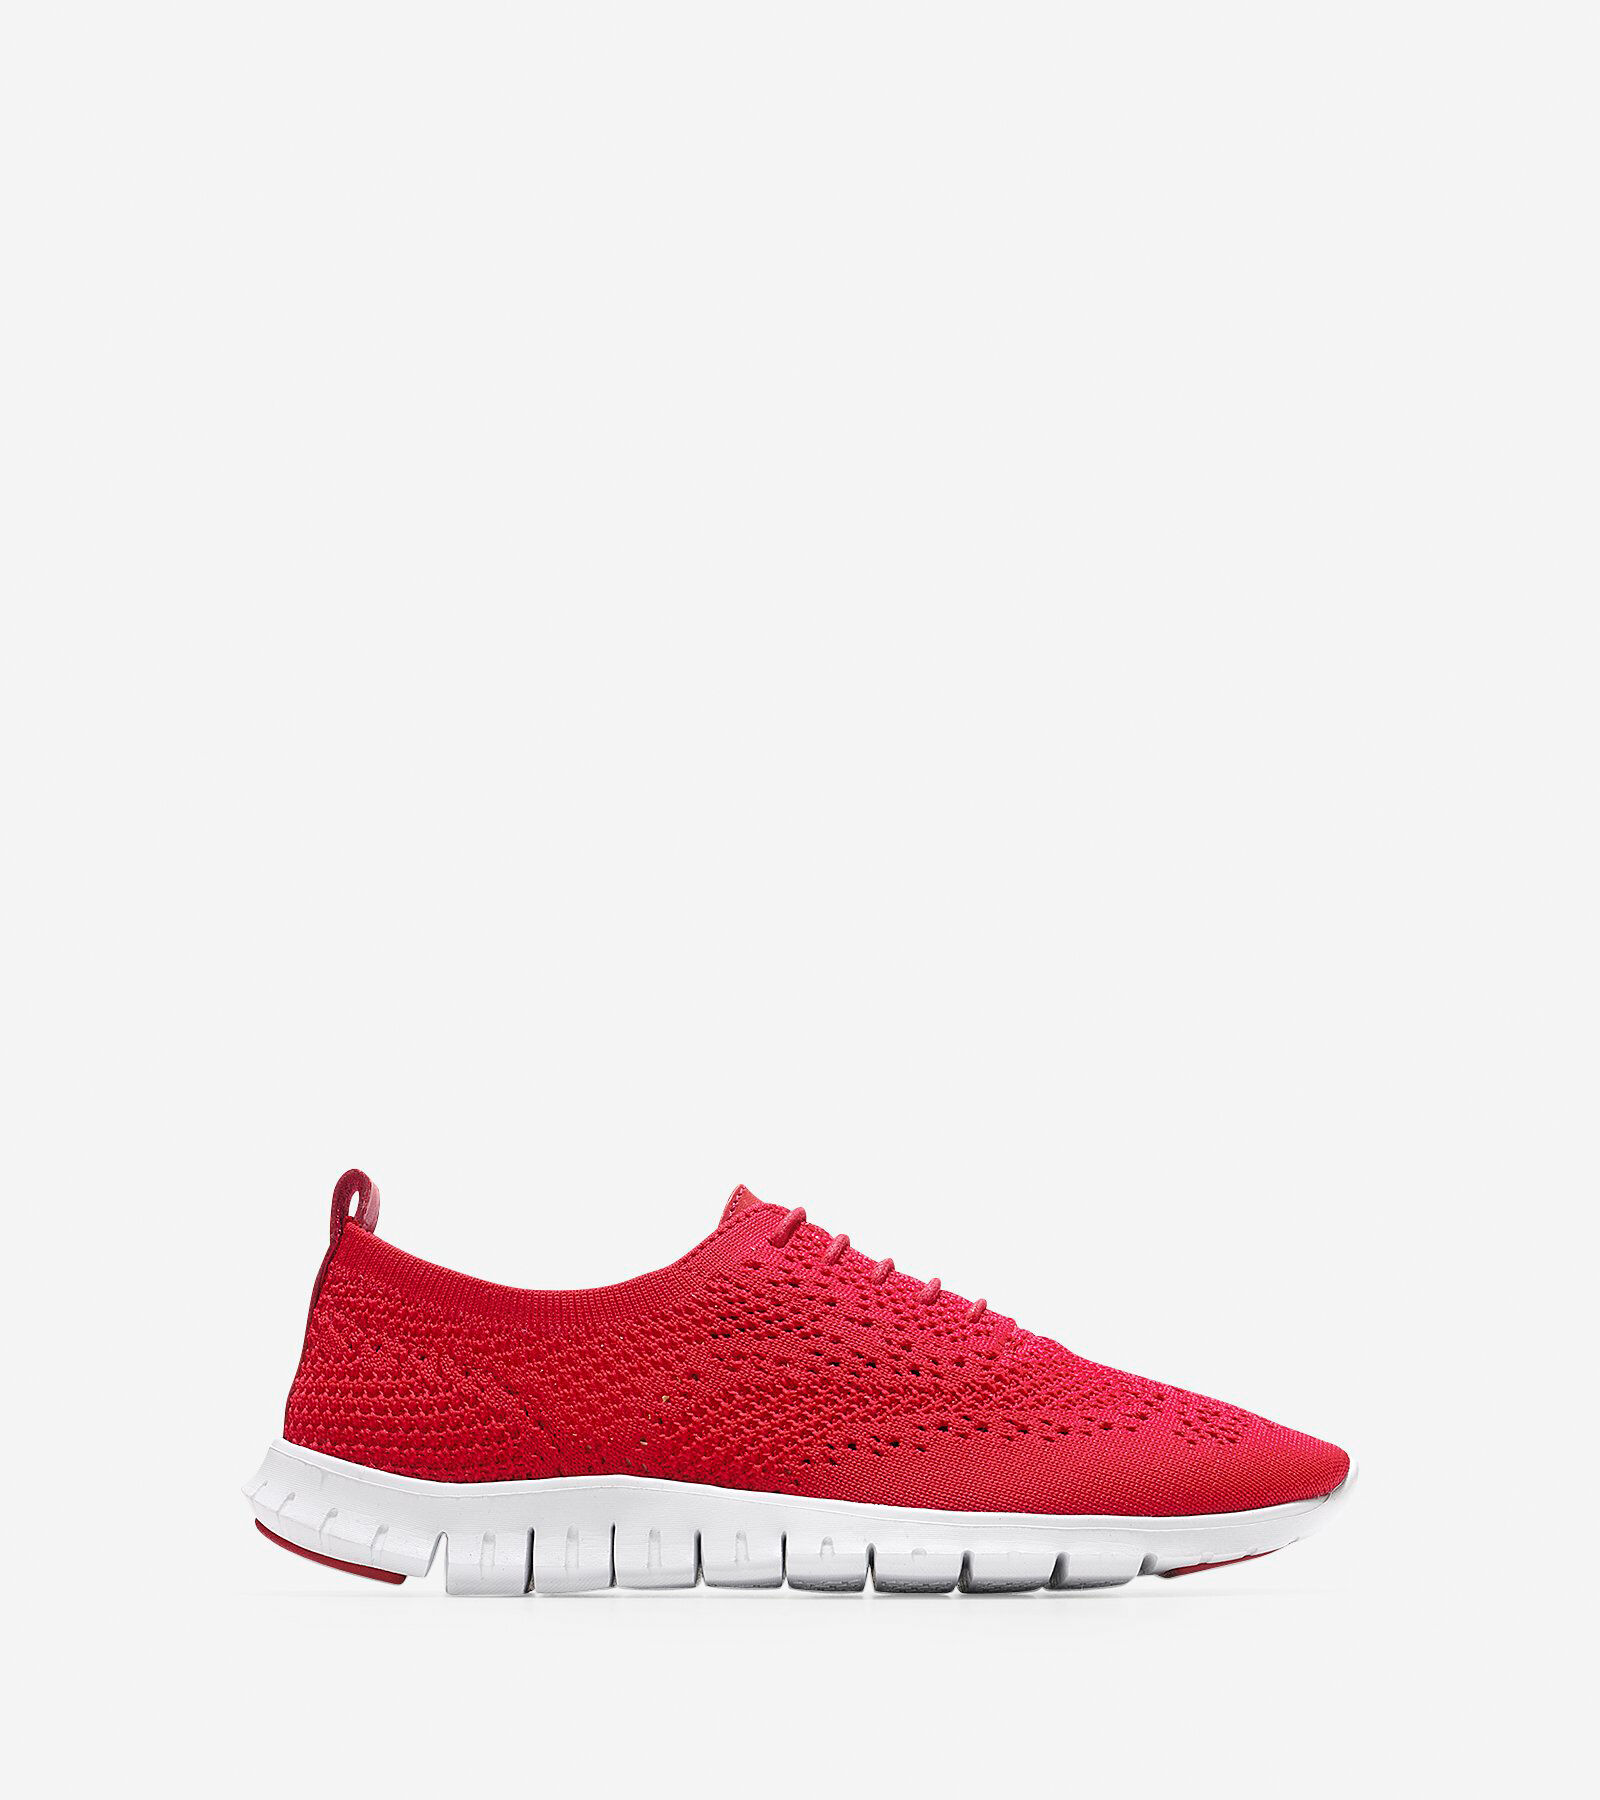 cole haan shoes stitchlite grand productions 700511